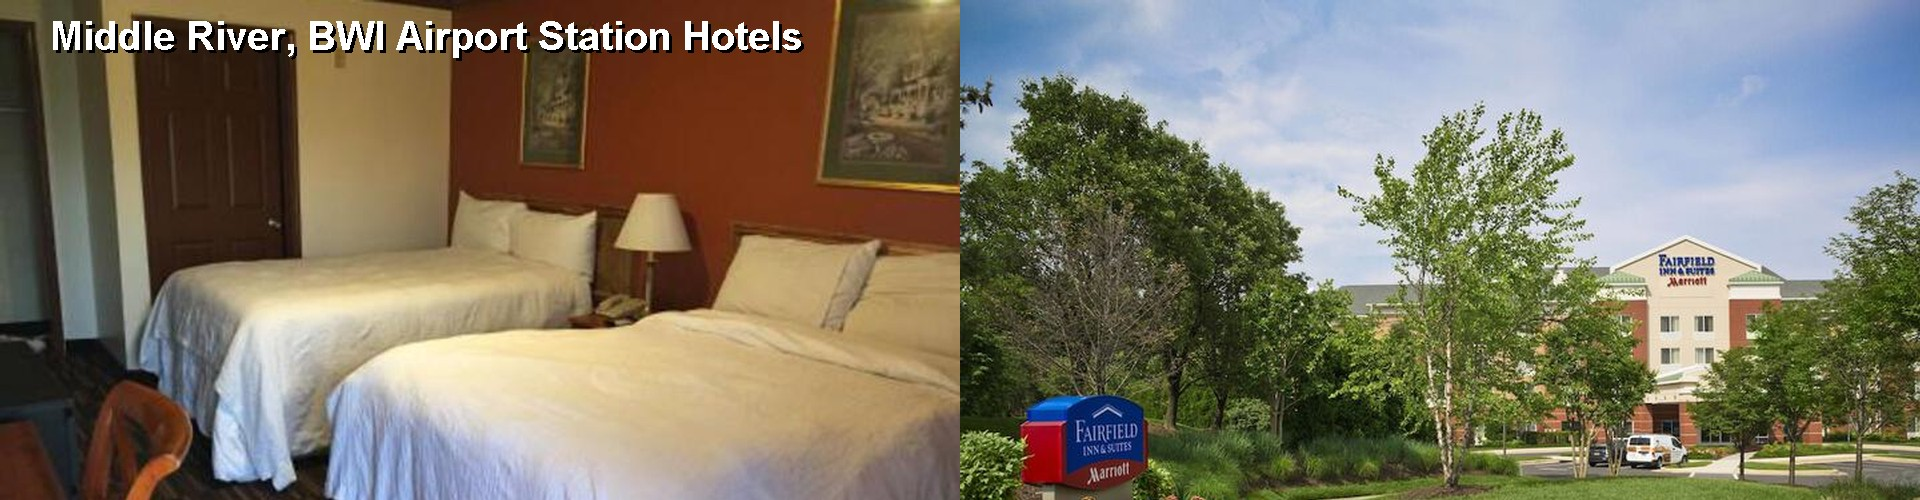 5 Best Hotels near Middle River, BWI Airport Station